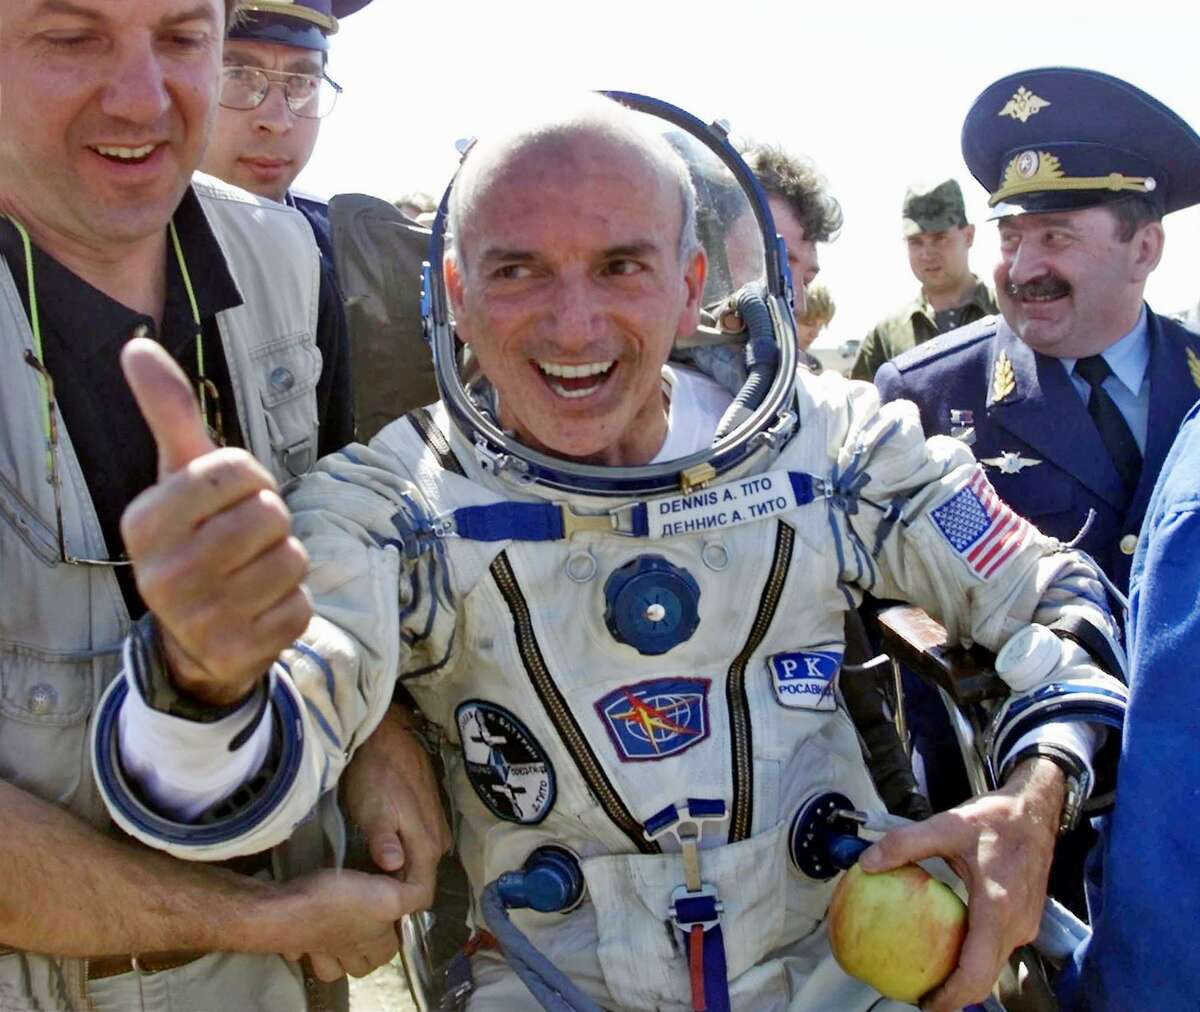 American multimillionaire Dennis Tito, 60, gestures shortly after his landing on the steppes, 50 miles northeast of Arkalyk, Kazakstan, on May 6, 2001. Others are unidentified. The Russian Soyuz capsule carrying the world's first paying space tourist landed successfully, ending Tito's multimillion dollar cosmos adventure.